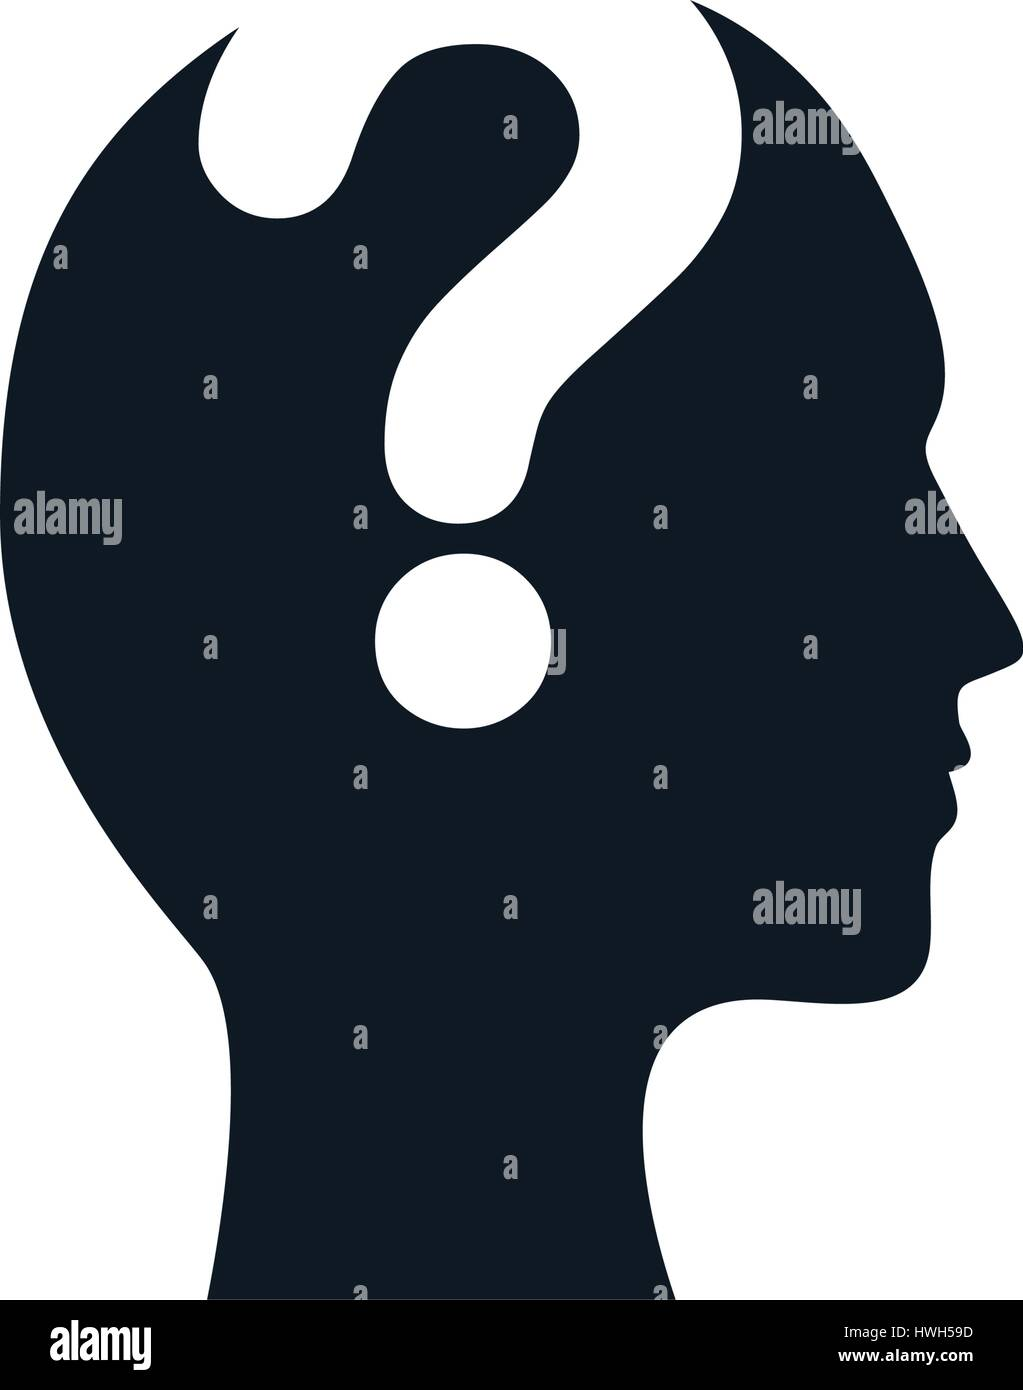 silhouette head question mark image Stock Vector